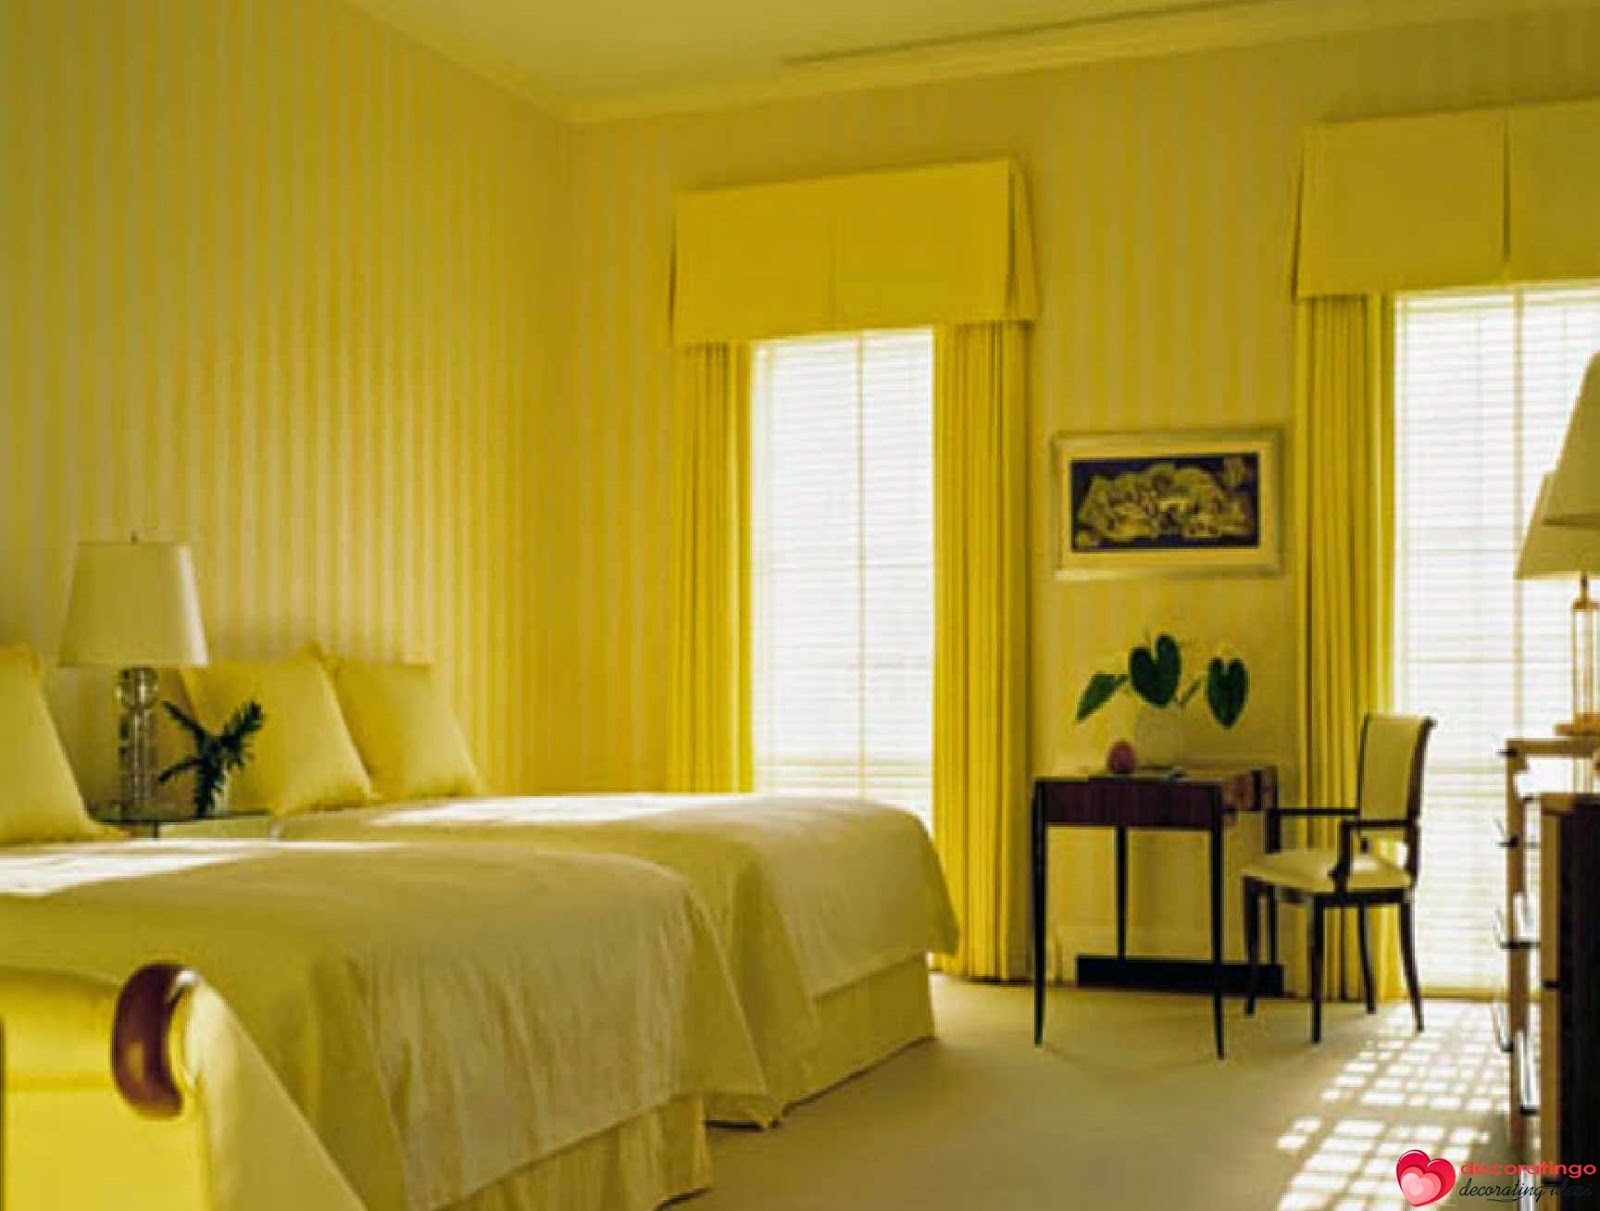 Yellow Bedroom Decorating Ideas - Wall Decor Ideas